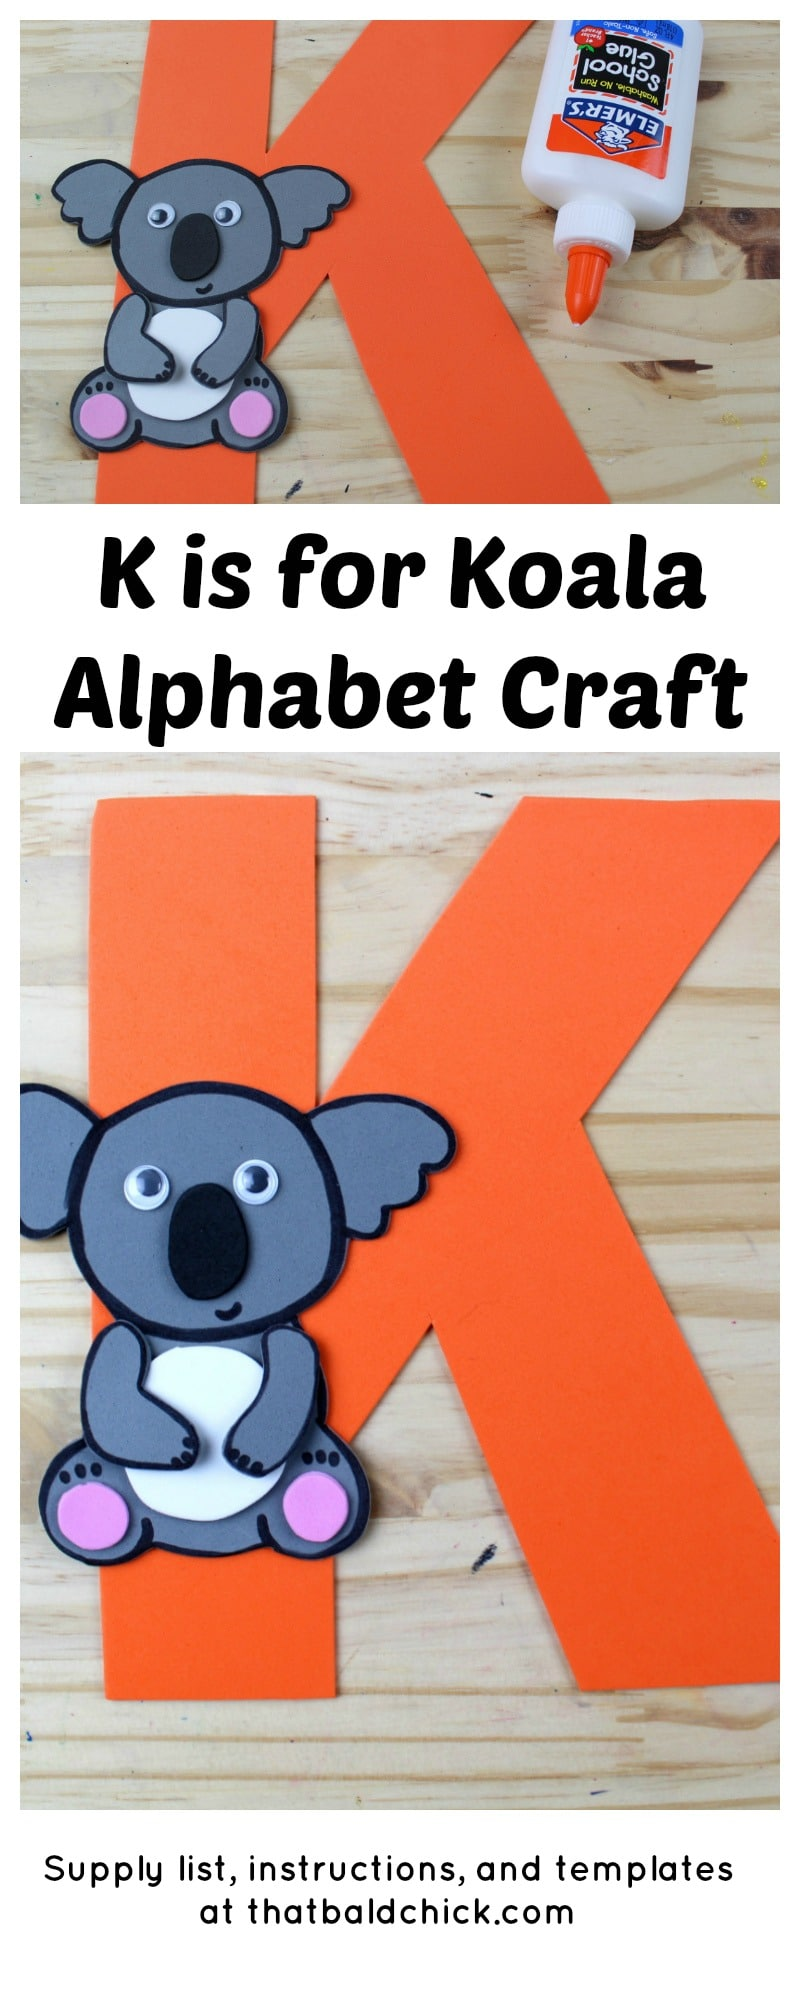 K is for Koala Alphabet Craft - supply list, instructions, and templates at thatbaldchick.com